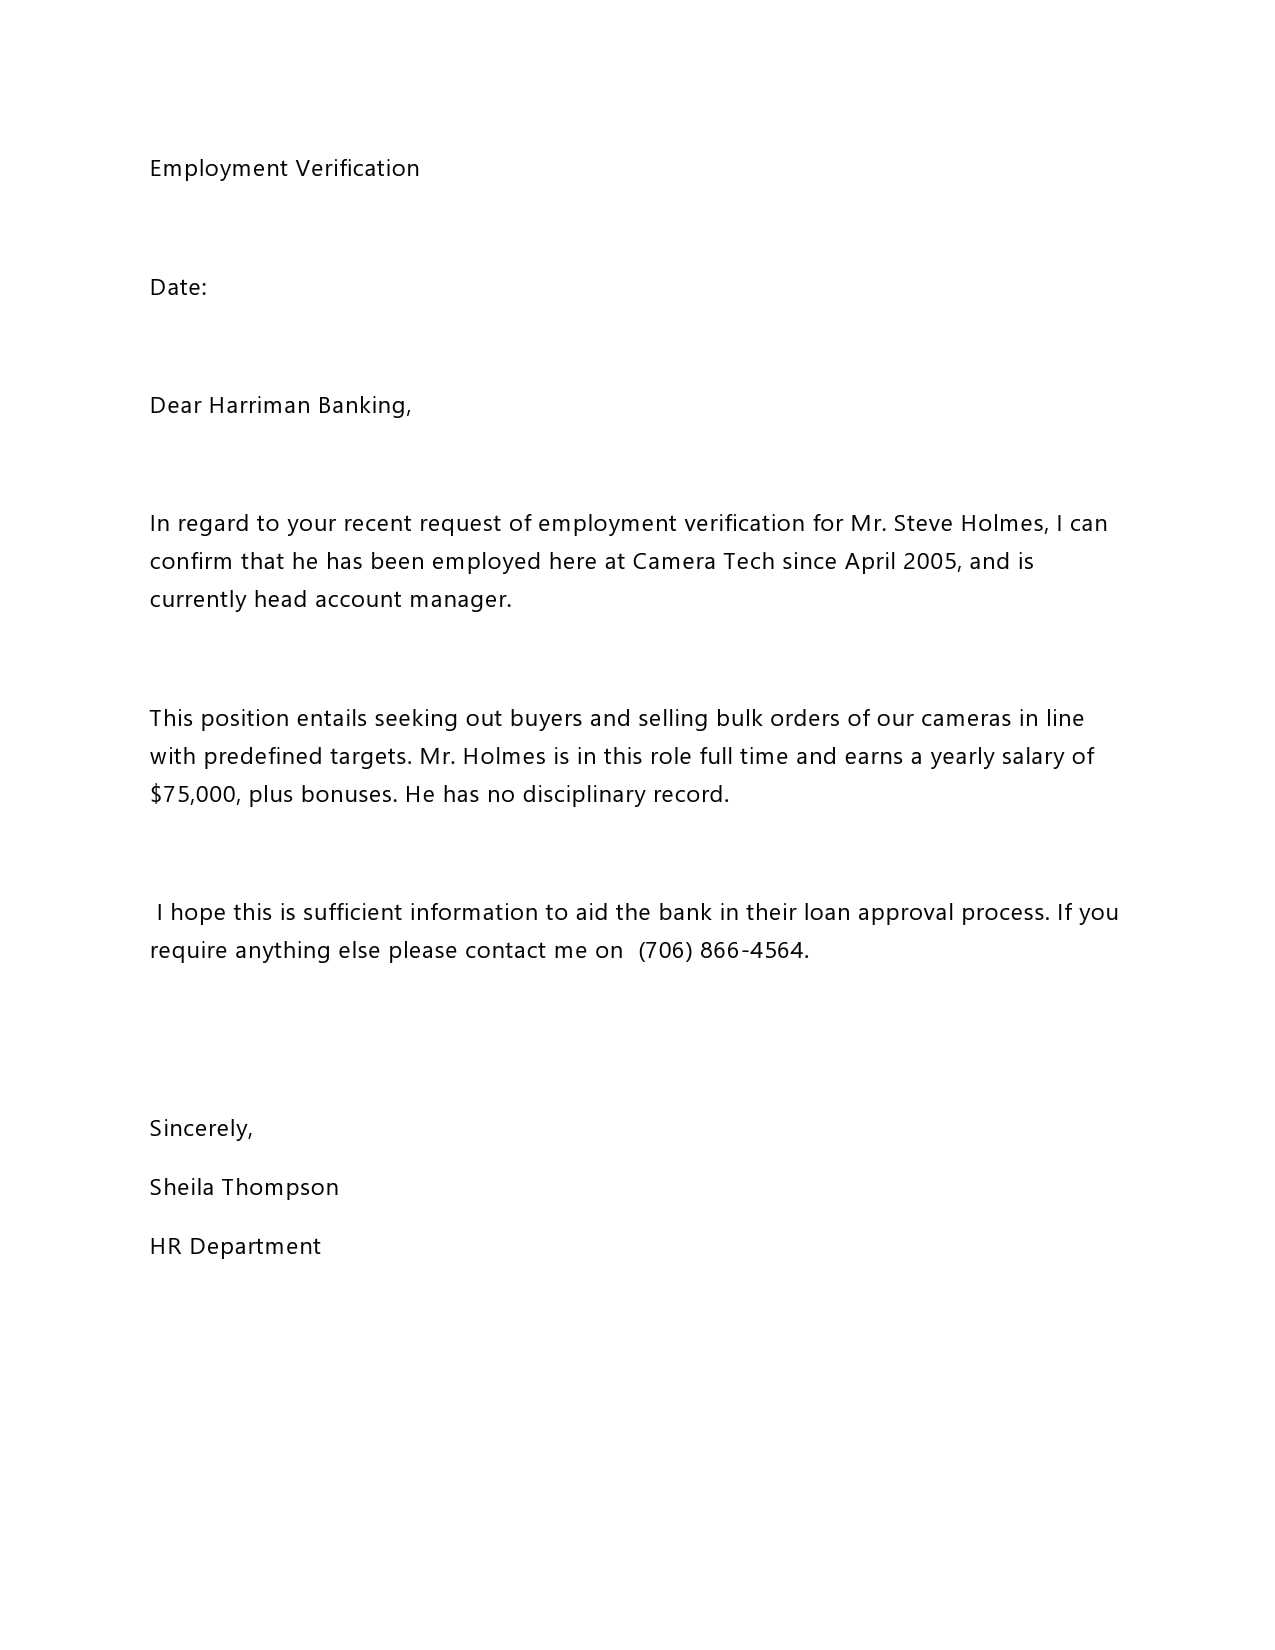 Proof Of Employment Letter Pdf from templatearchive.com